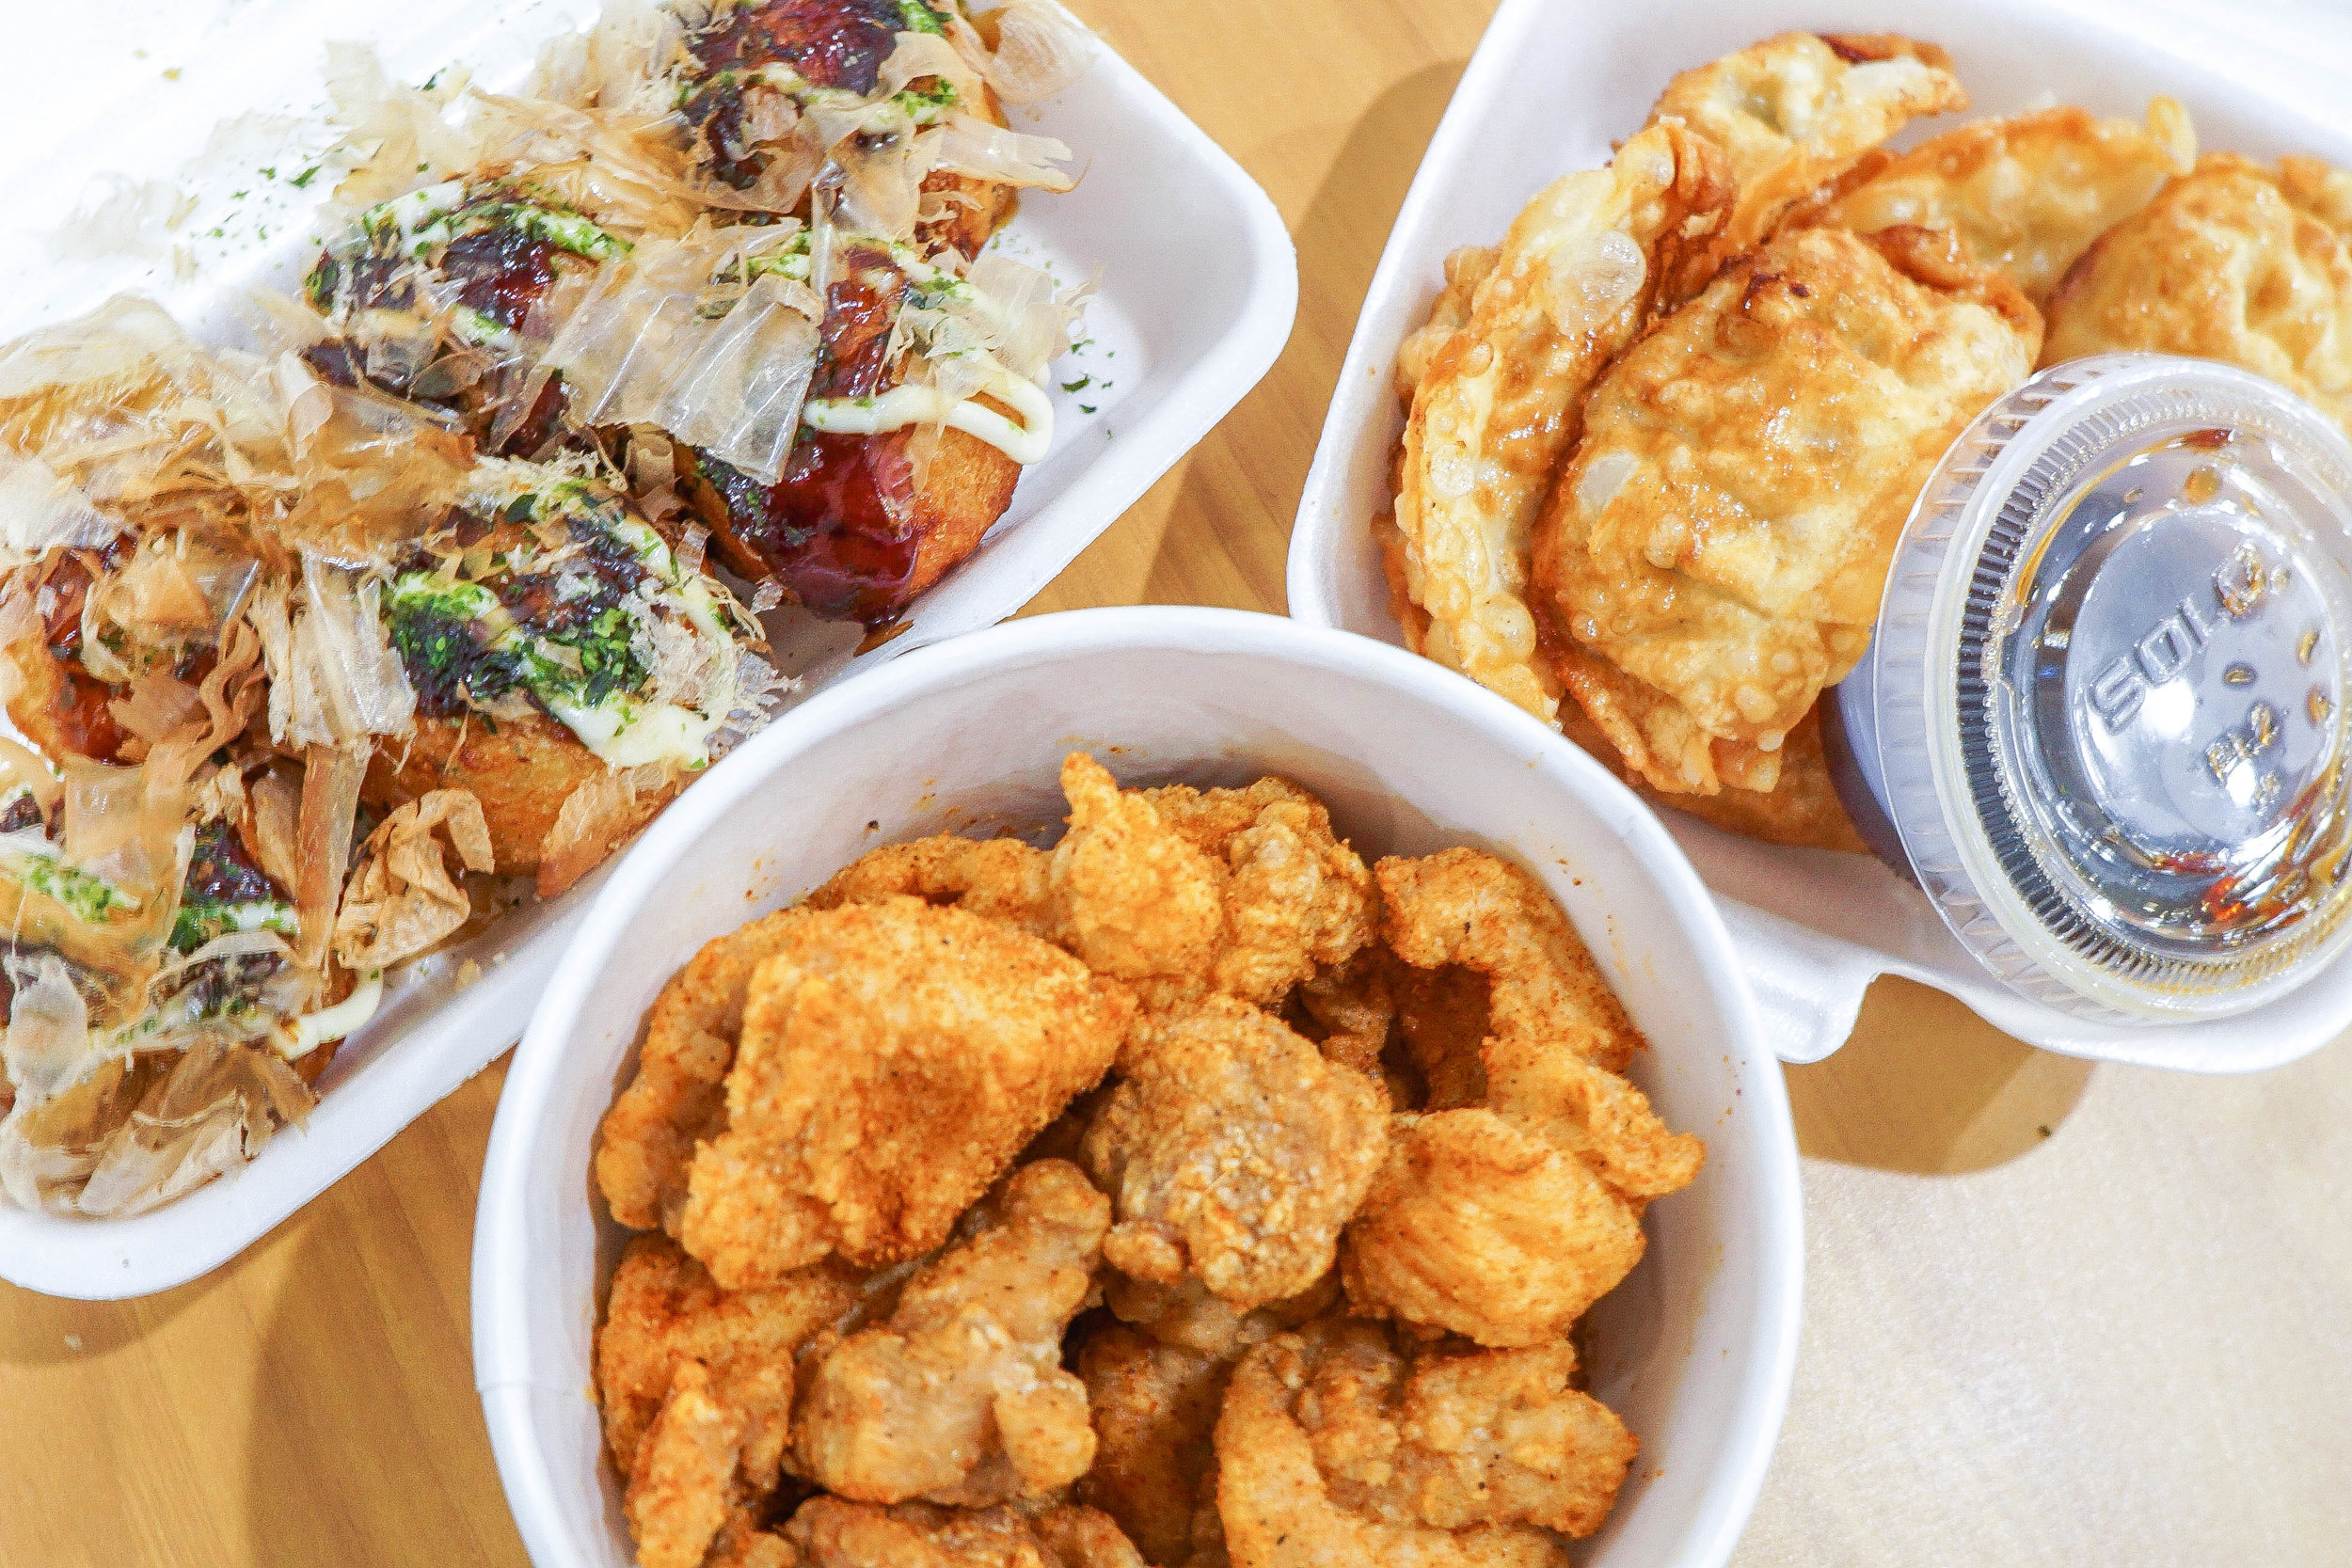 Clockwise: Takoyaki, Gyoza, and Popcorn Chicken